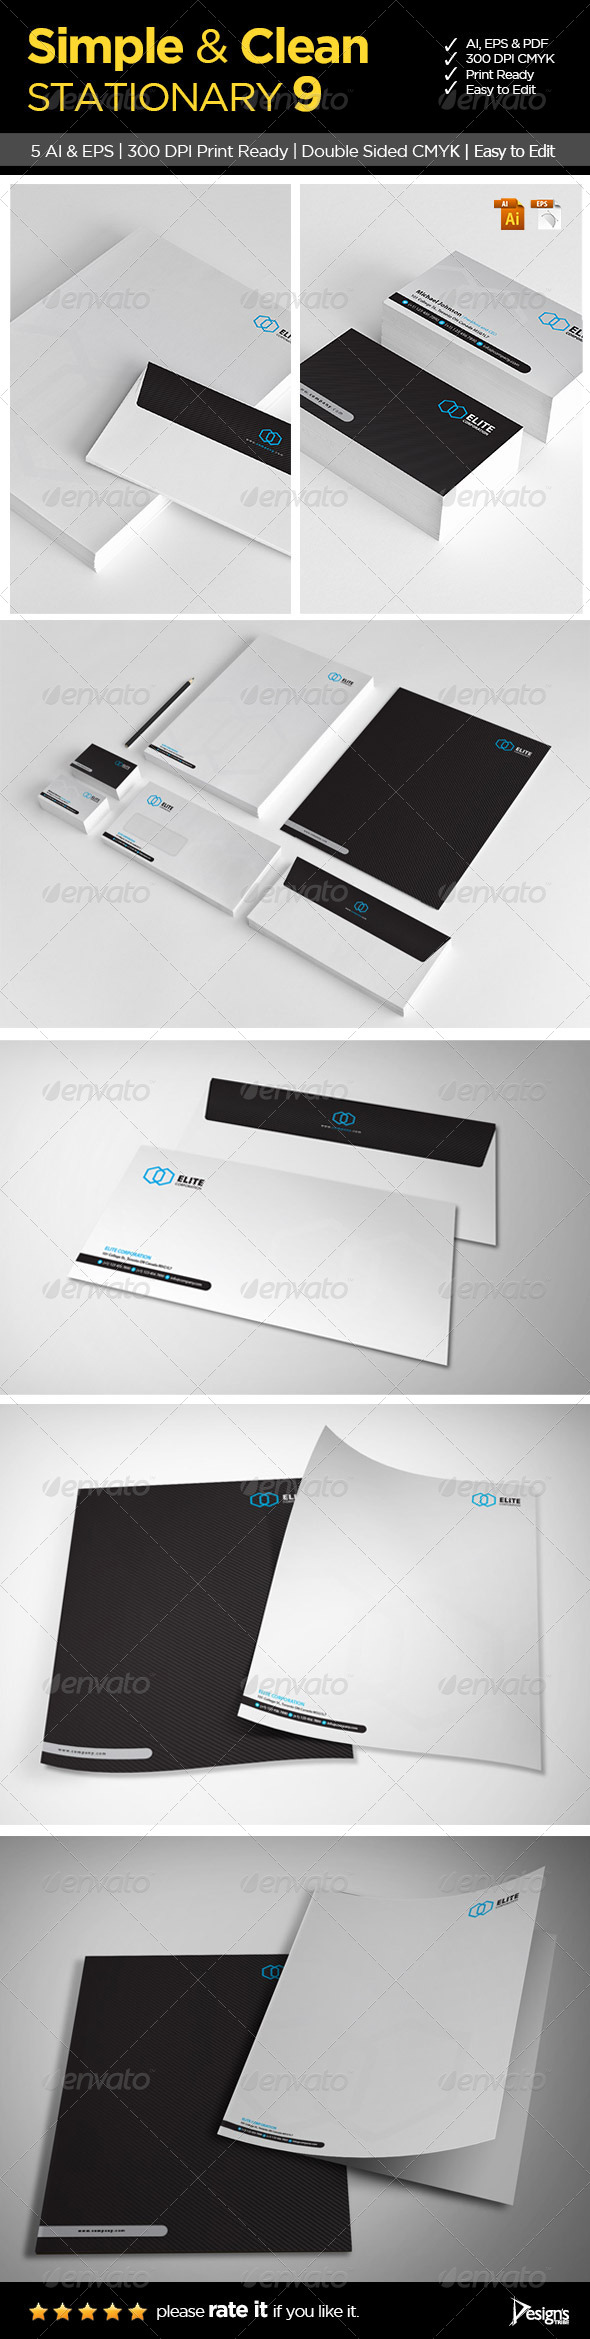 GraphicRiver Simple and Clean Stationary 9 6283928